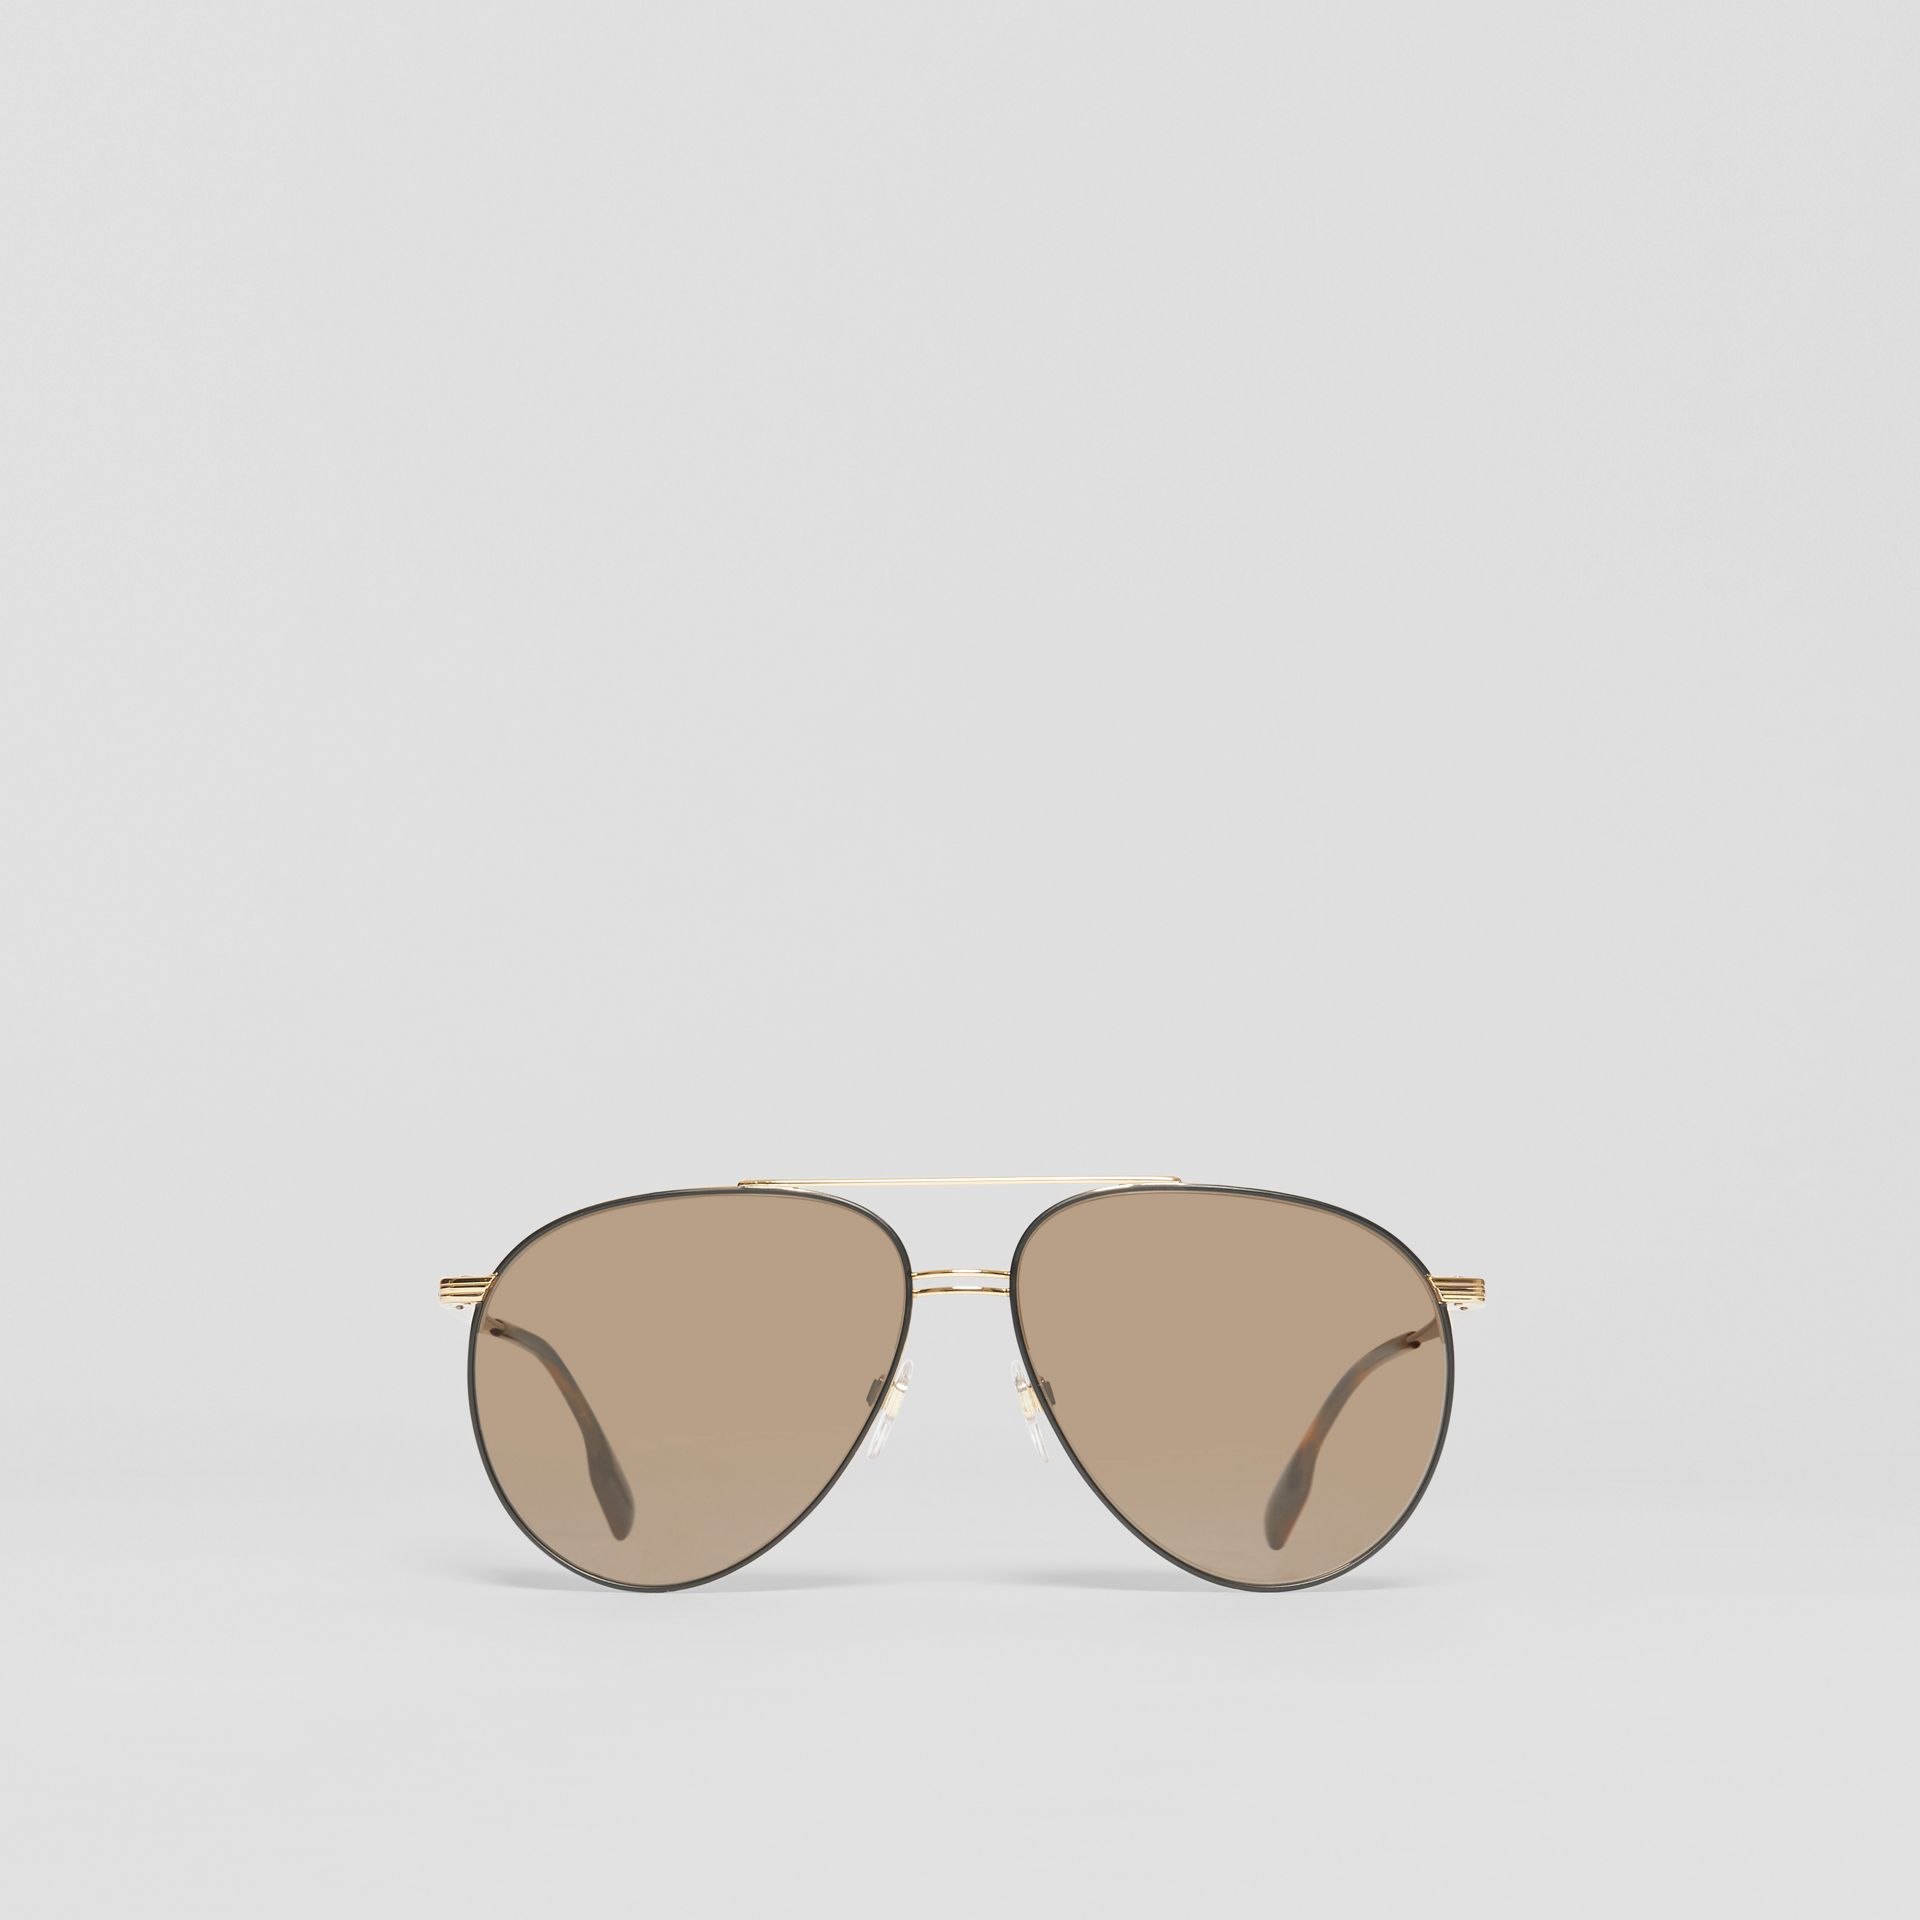 Top Bar Detail Pilot Sunglasses in Tortoiseshell - Men | Burberry United Kingdom - gallery image 0